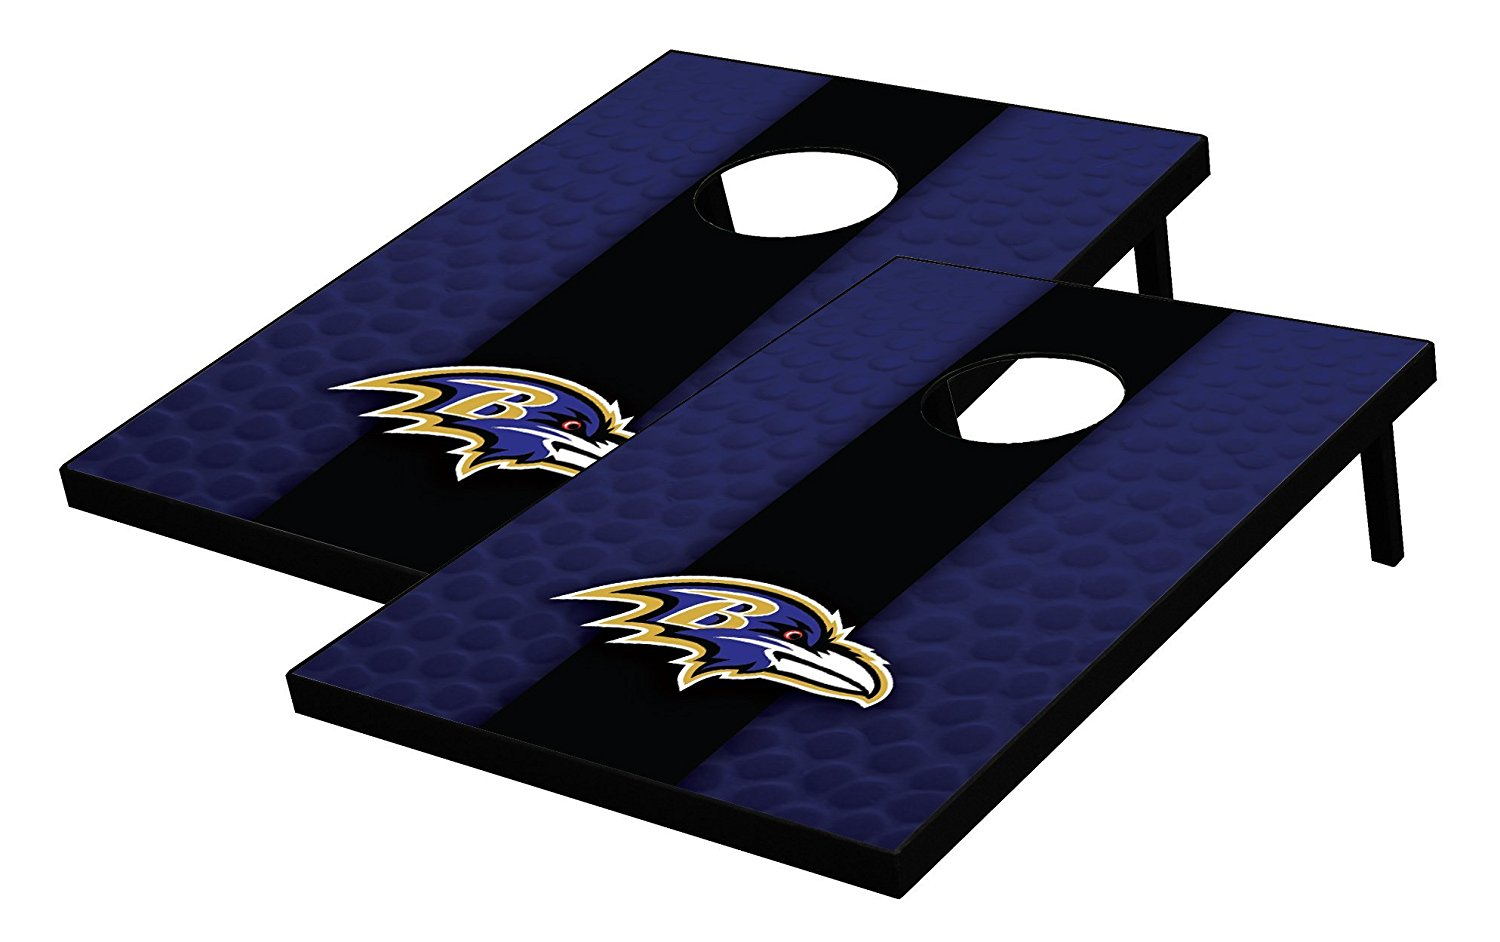 NFL Baltimore Ravens Tailgate Toss Bean Bag Game Set, Multicolor, One Size